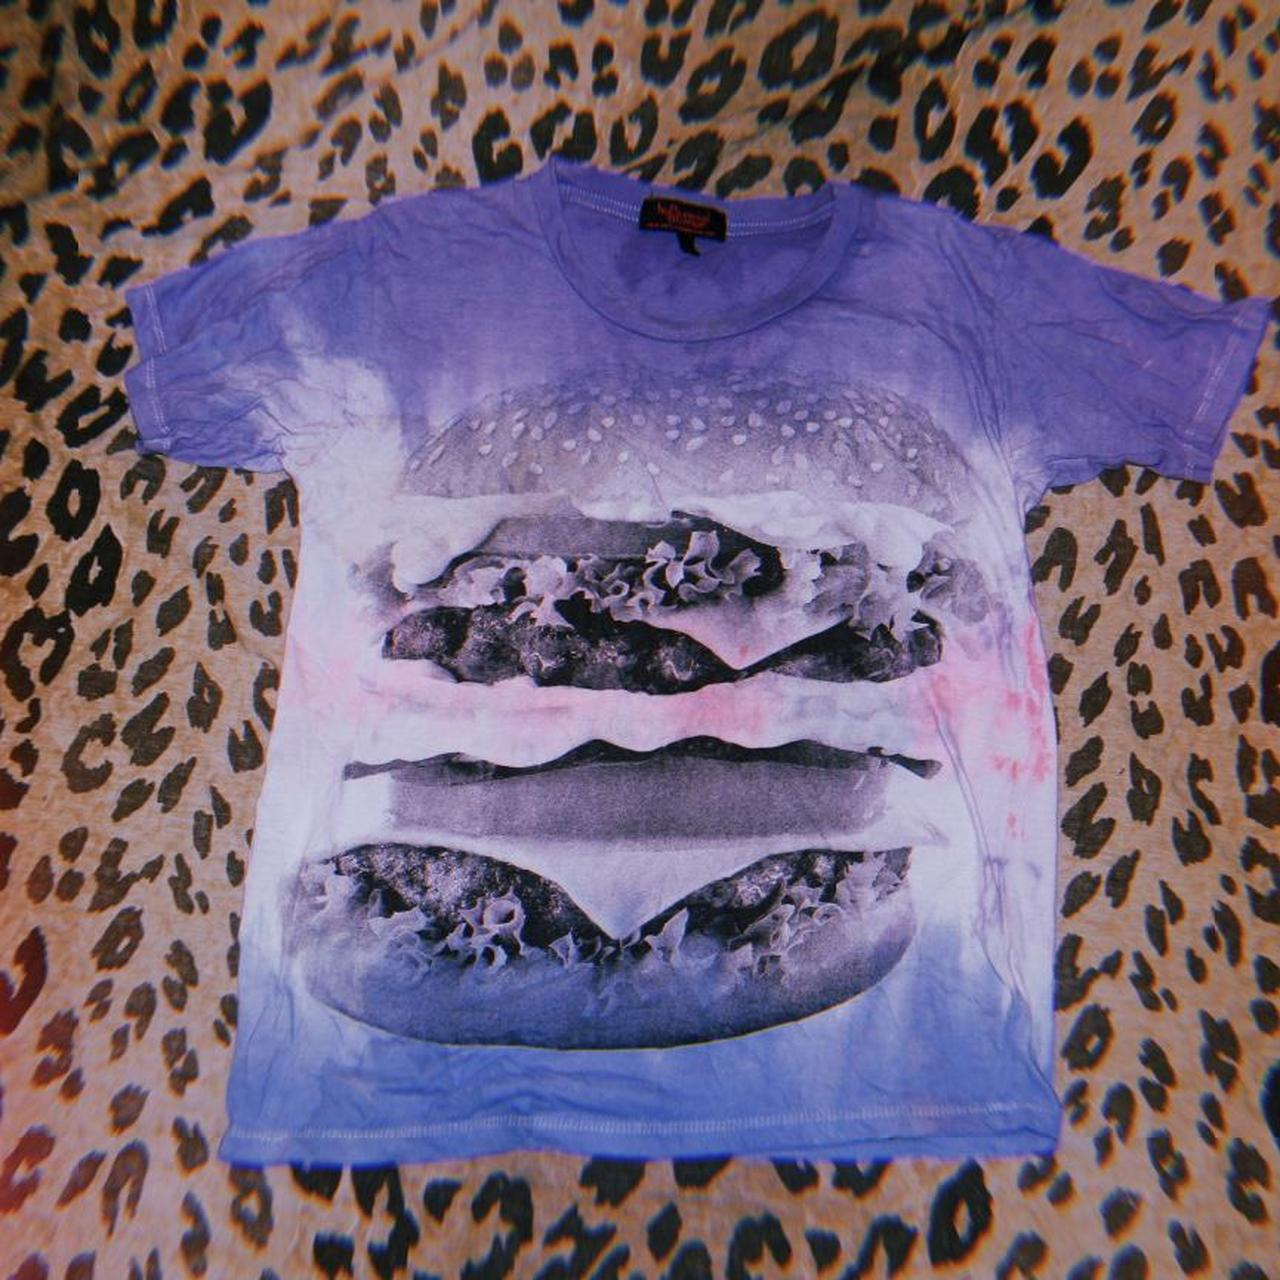 Product Image 1 - #Tiedye #cheeseburger tee from #HollywoodMirror.  Check